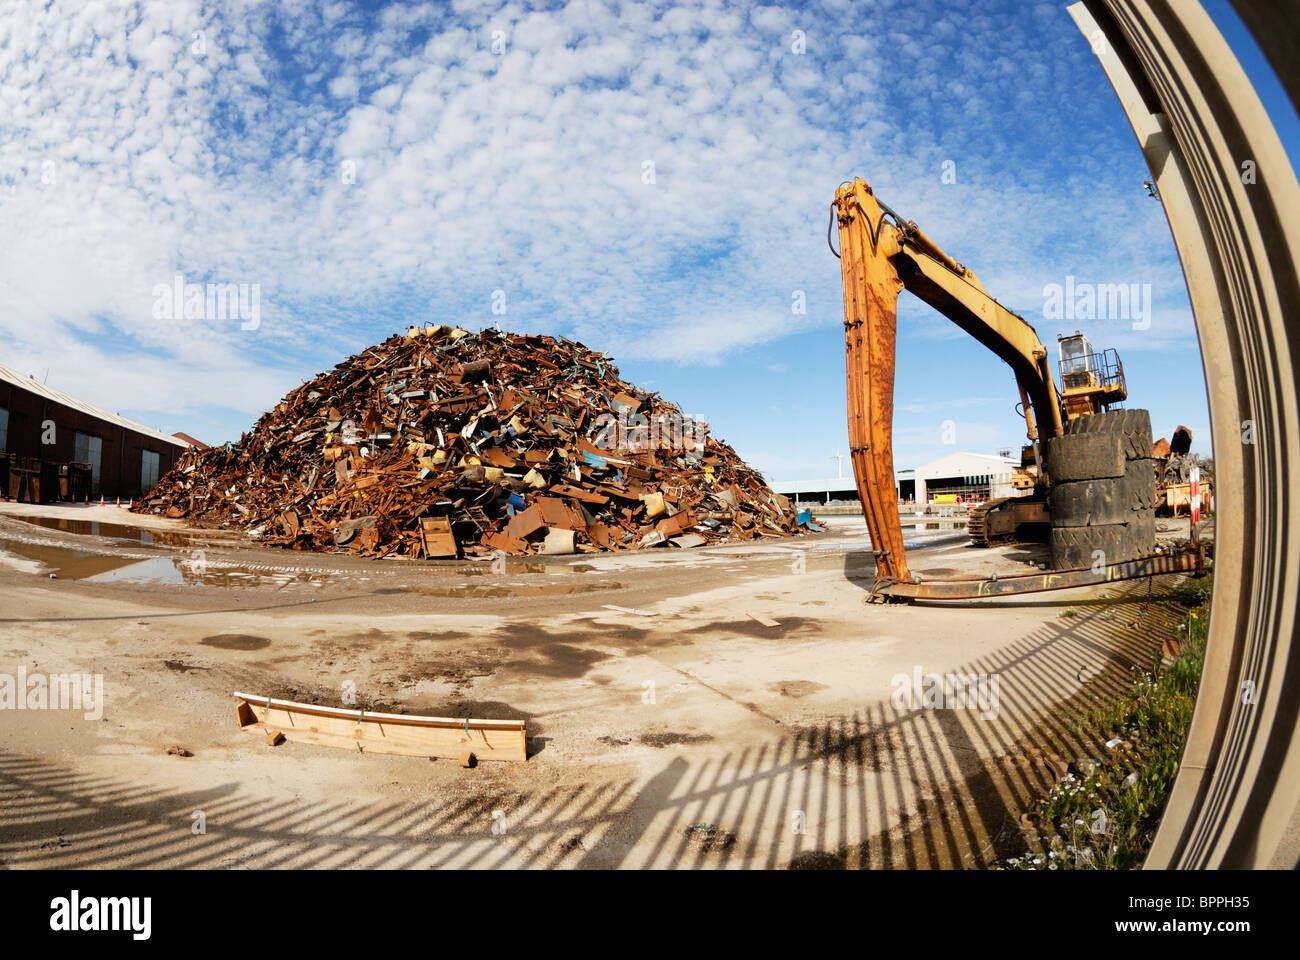 Scrap metal piled up on Liverpool Docks ready to be exported. - Stock Image